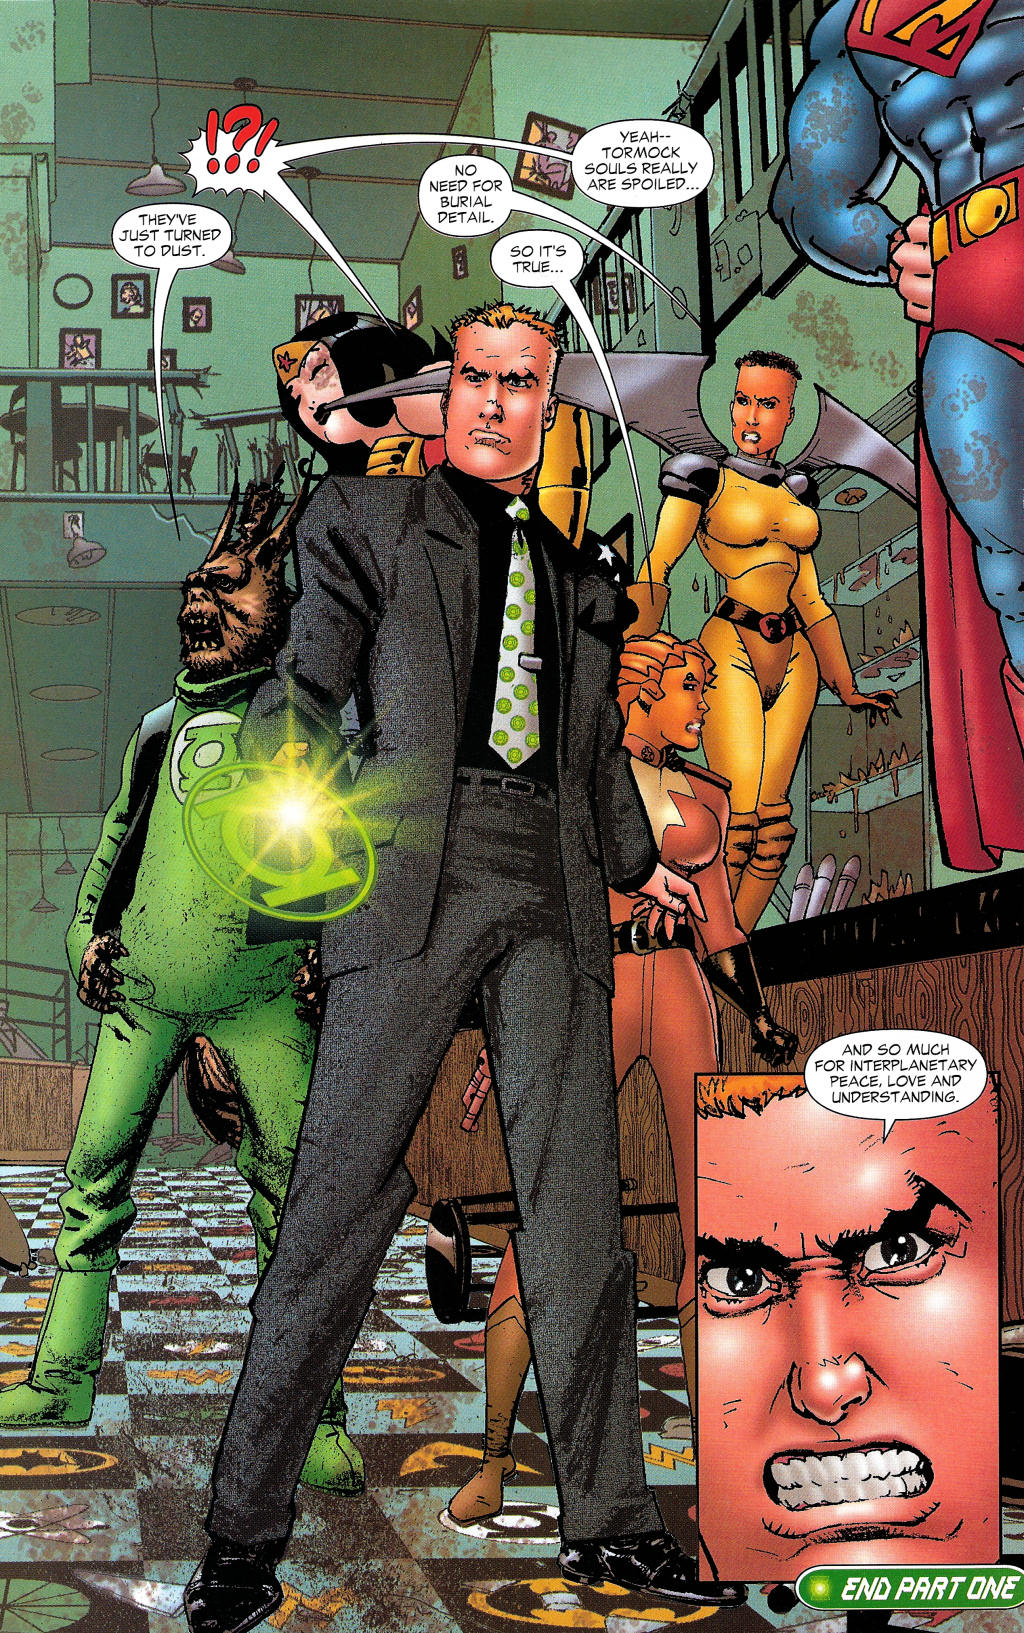 Read online Guy Gardner: Collateral Damage comic -  Issue #1 - 44